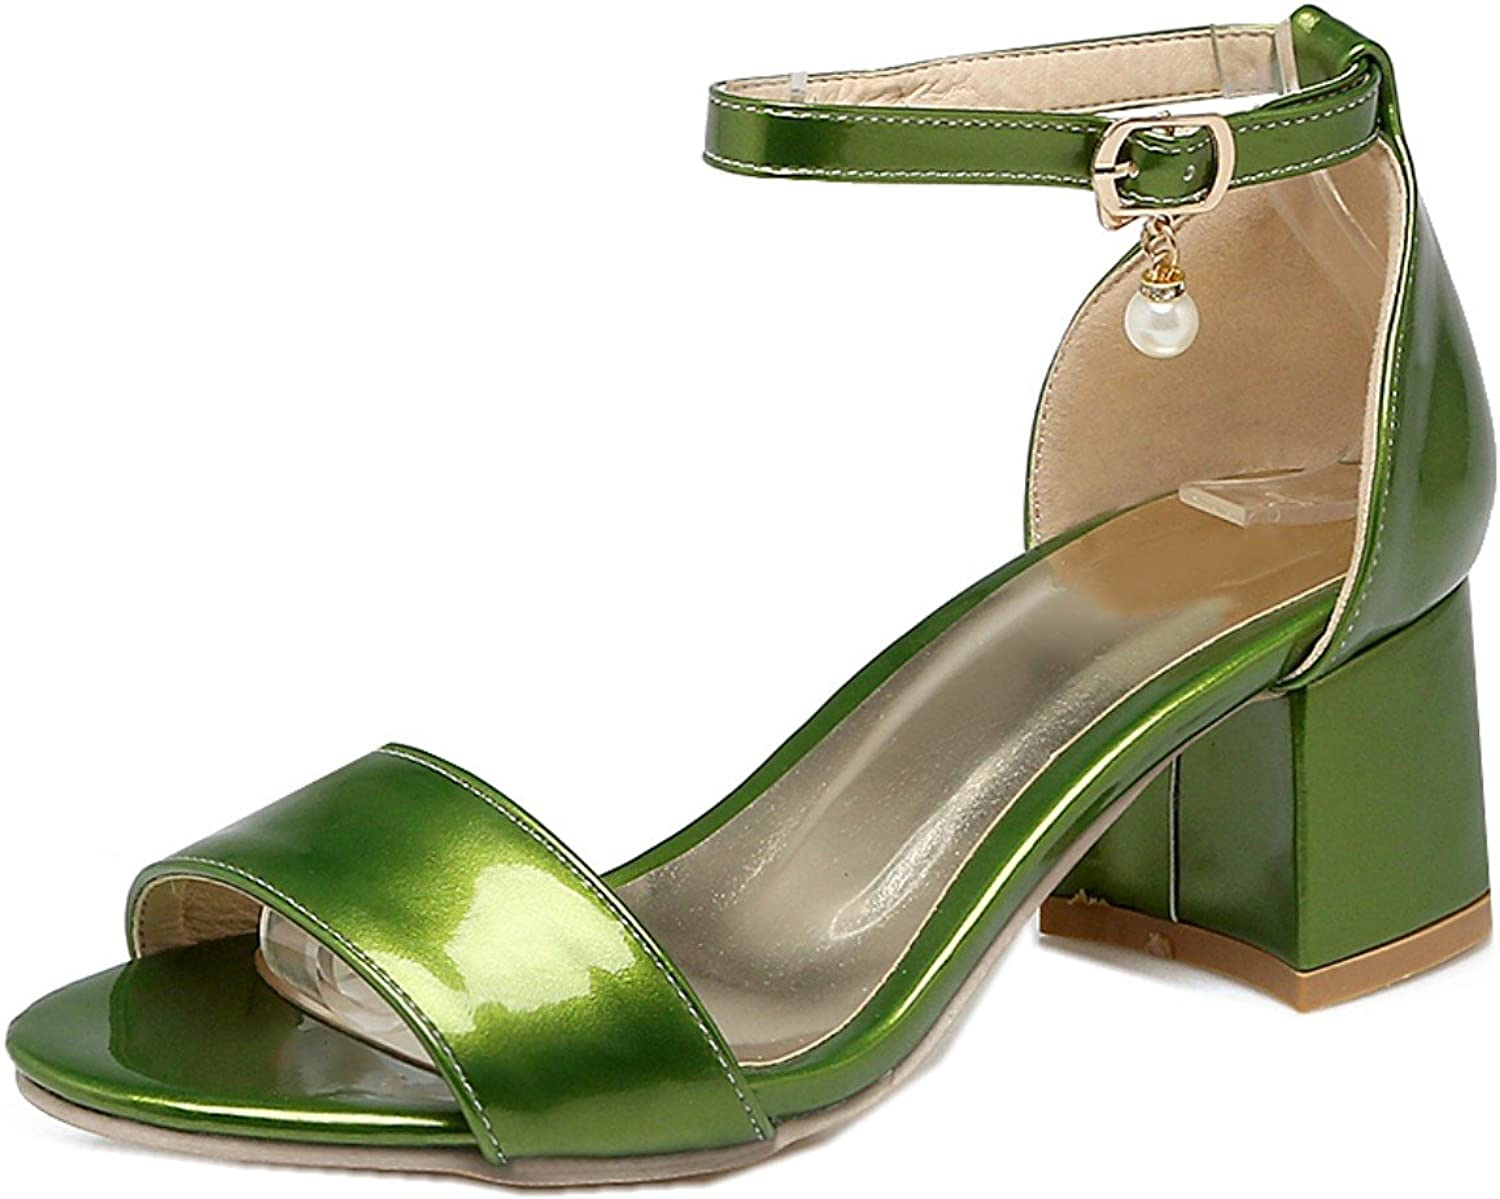 Rongzhi Womens Heeled Sandals Ankle Strap Buckle Chunky Block Heels shoes Open Toe Patent Leather Plus